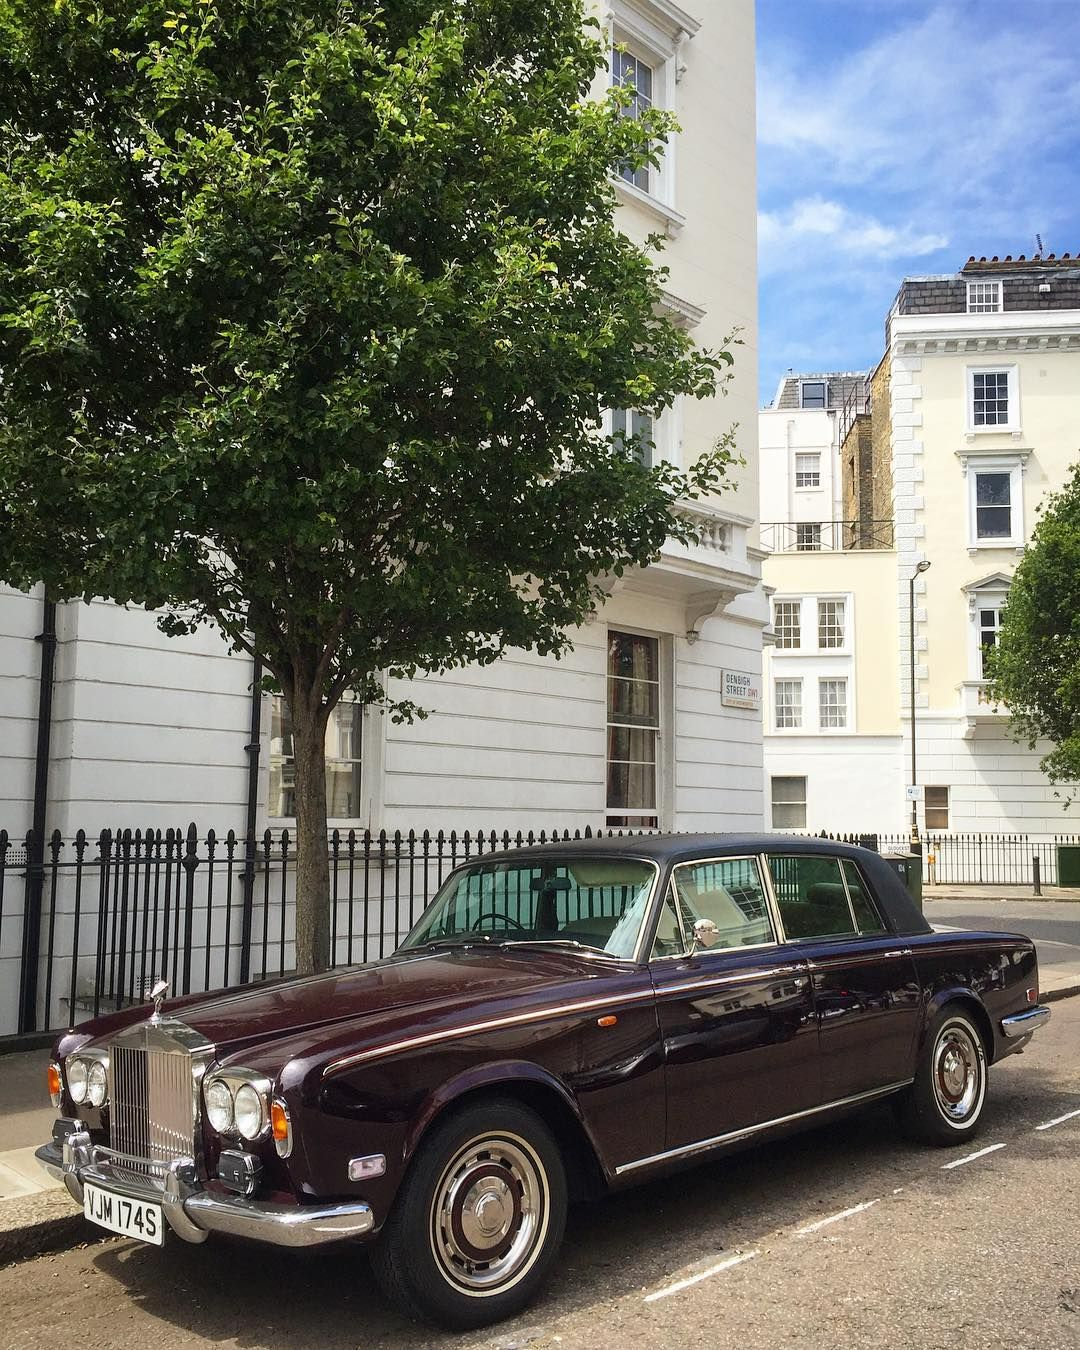 Supercar Duo Luxurycorp Rollsroyce: Rolls-Royce Silver Shadow @supercars_and_classic On